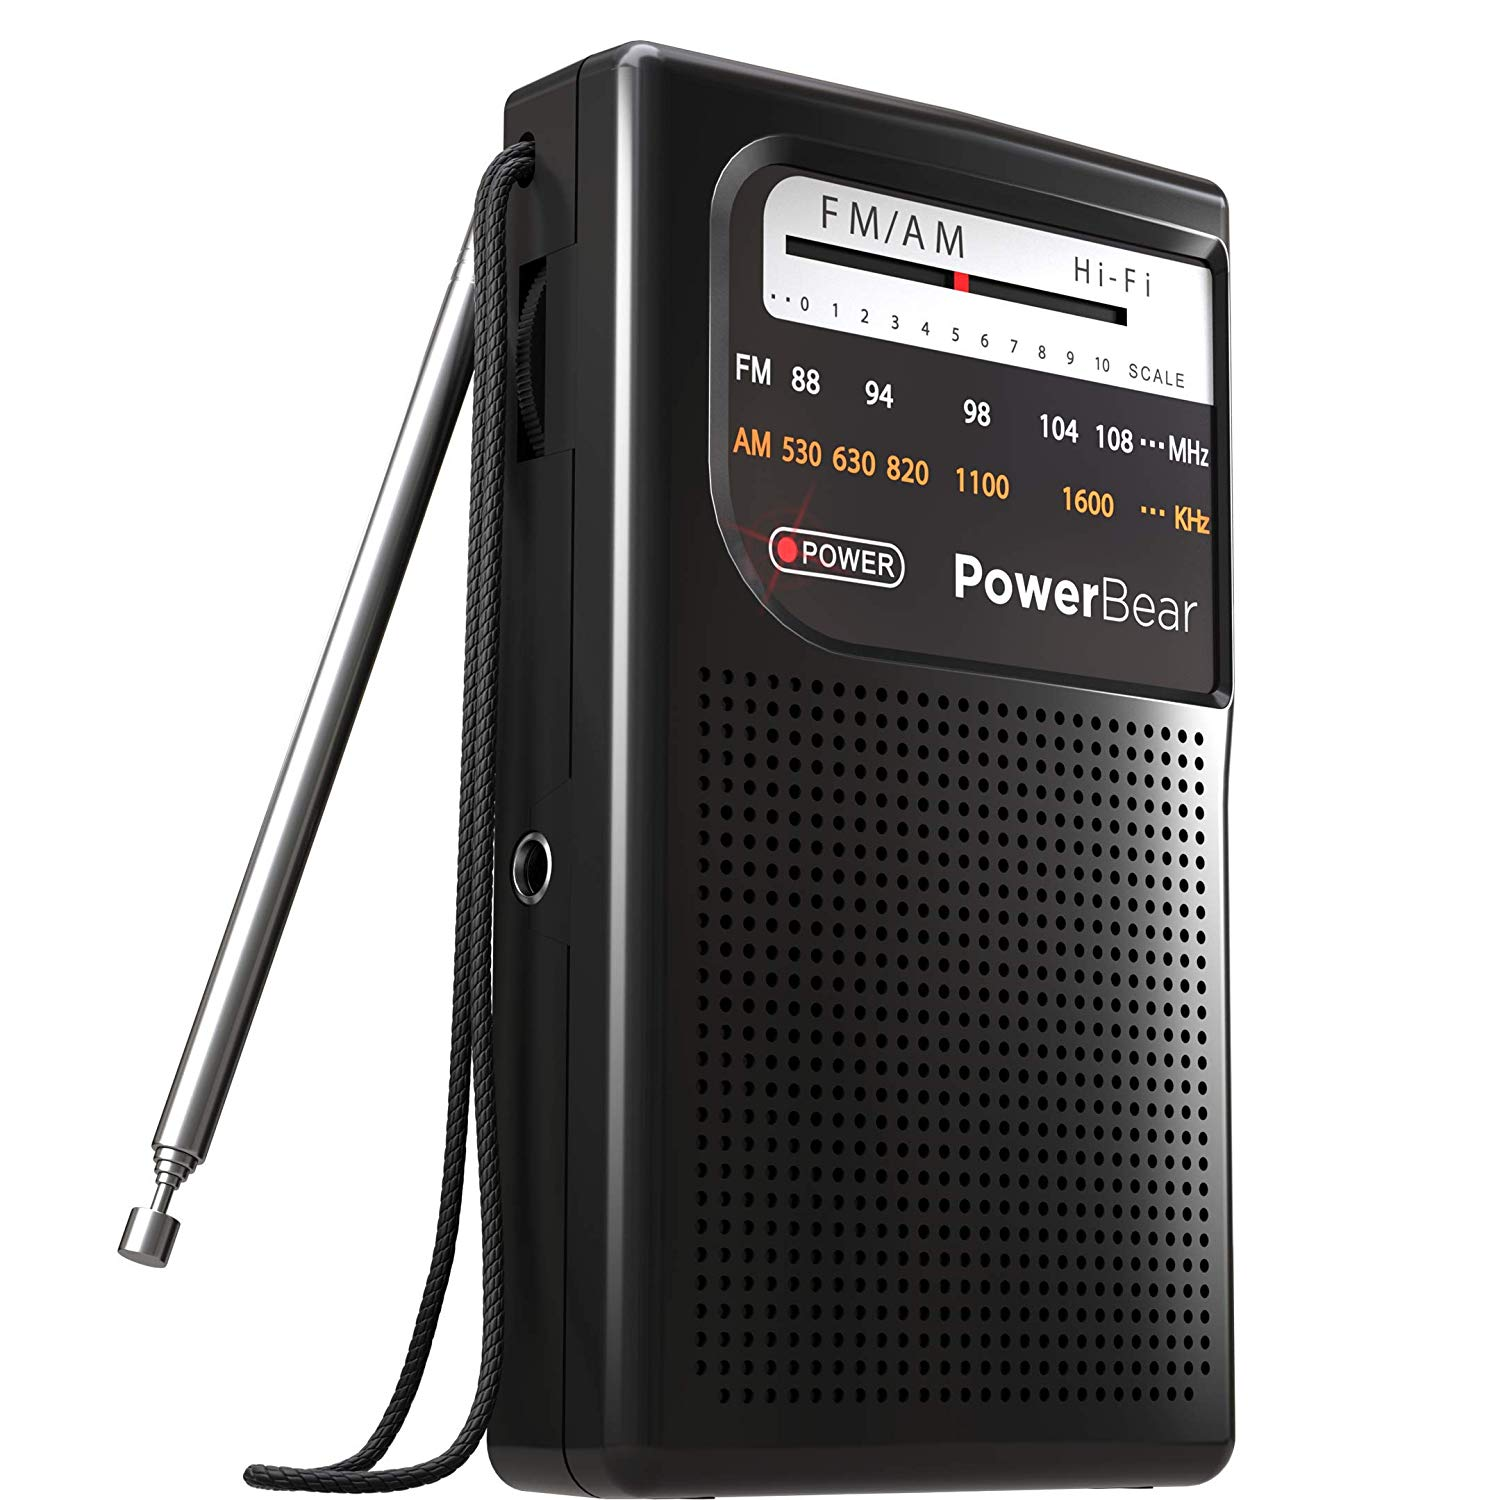 PowerBear AM FM Portable Radio | Long Range, Handheld